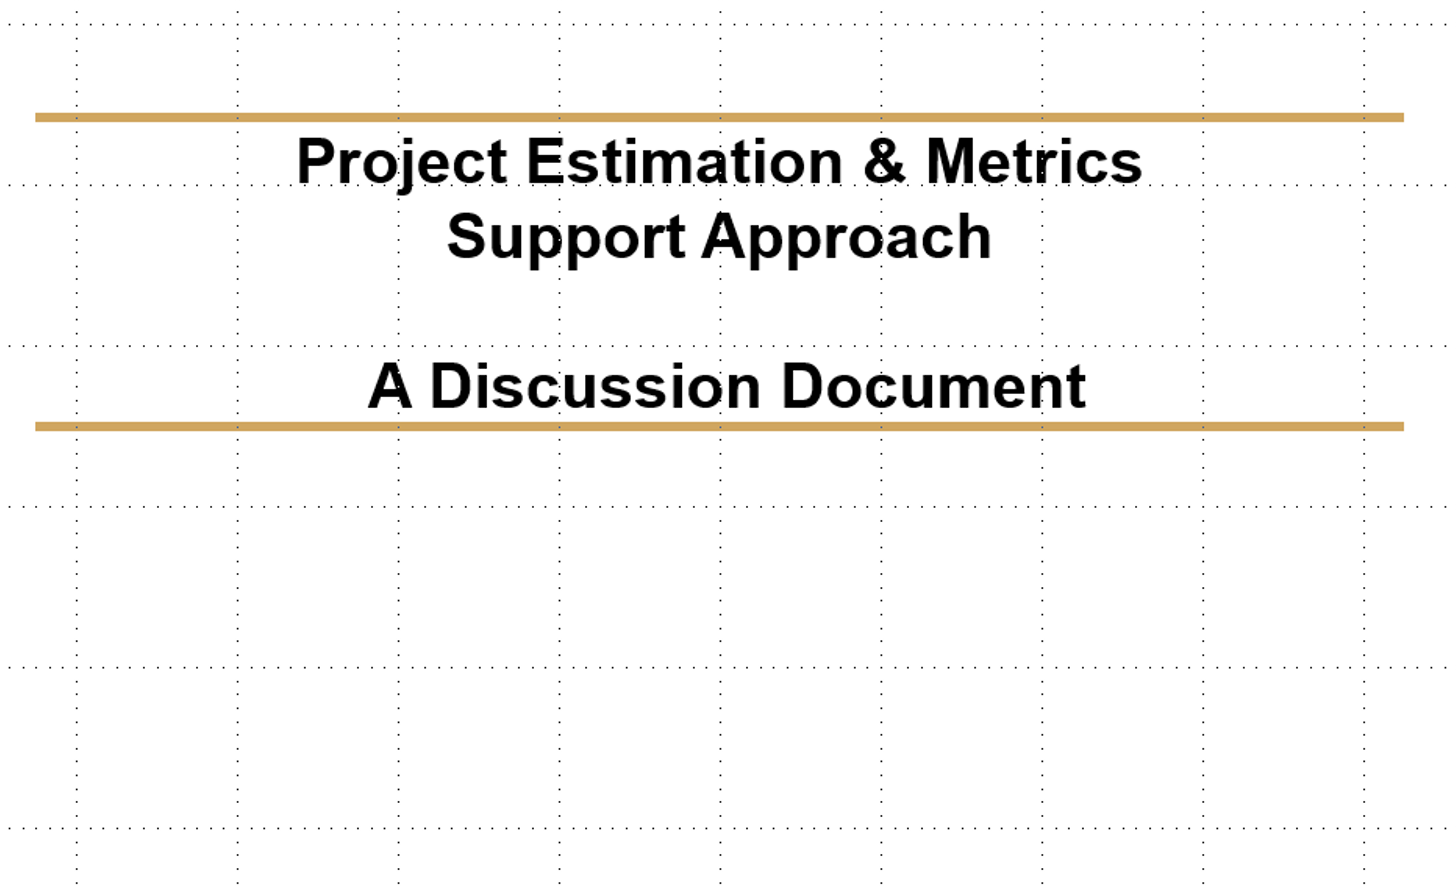 final aspect estimate of the project • makes final, critical project decisions, when needed  business owner:  different aspects of the project will be subject to change control during different phases: 15 type  planning :  expectation is the estimate will be plus or minus 10% in terms of accuracy.